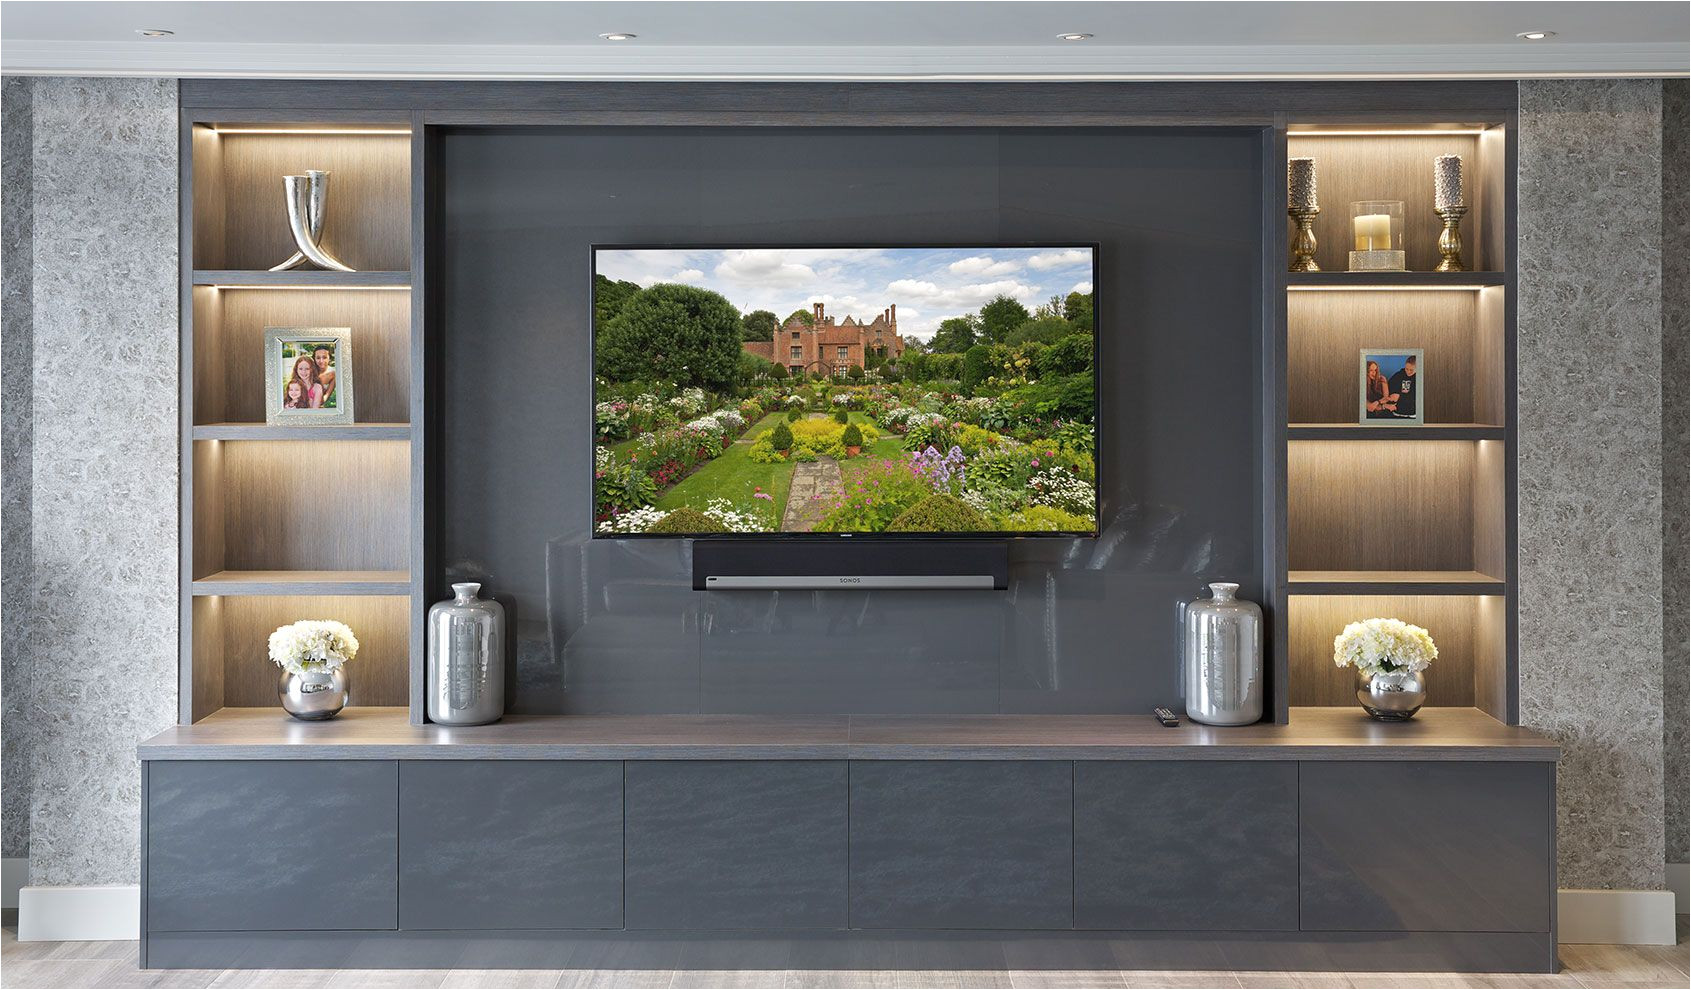 bespoke entertainment rooms and tv units by the wood works are designed for your ultimate enjoyment and the delight of your guests